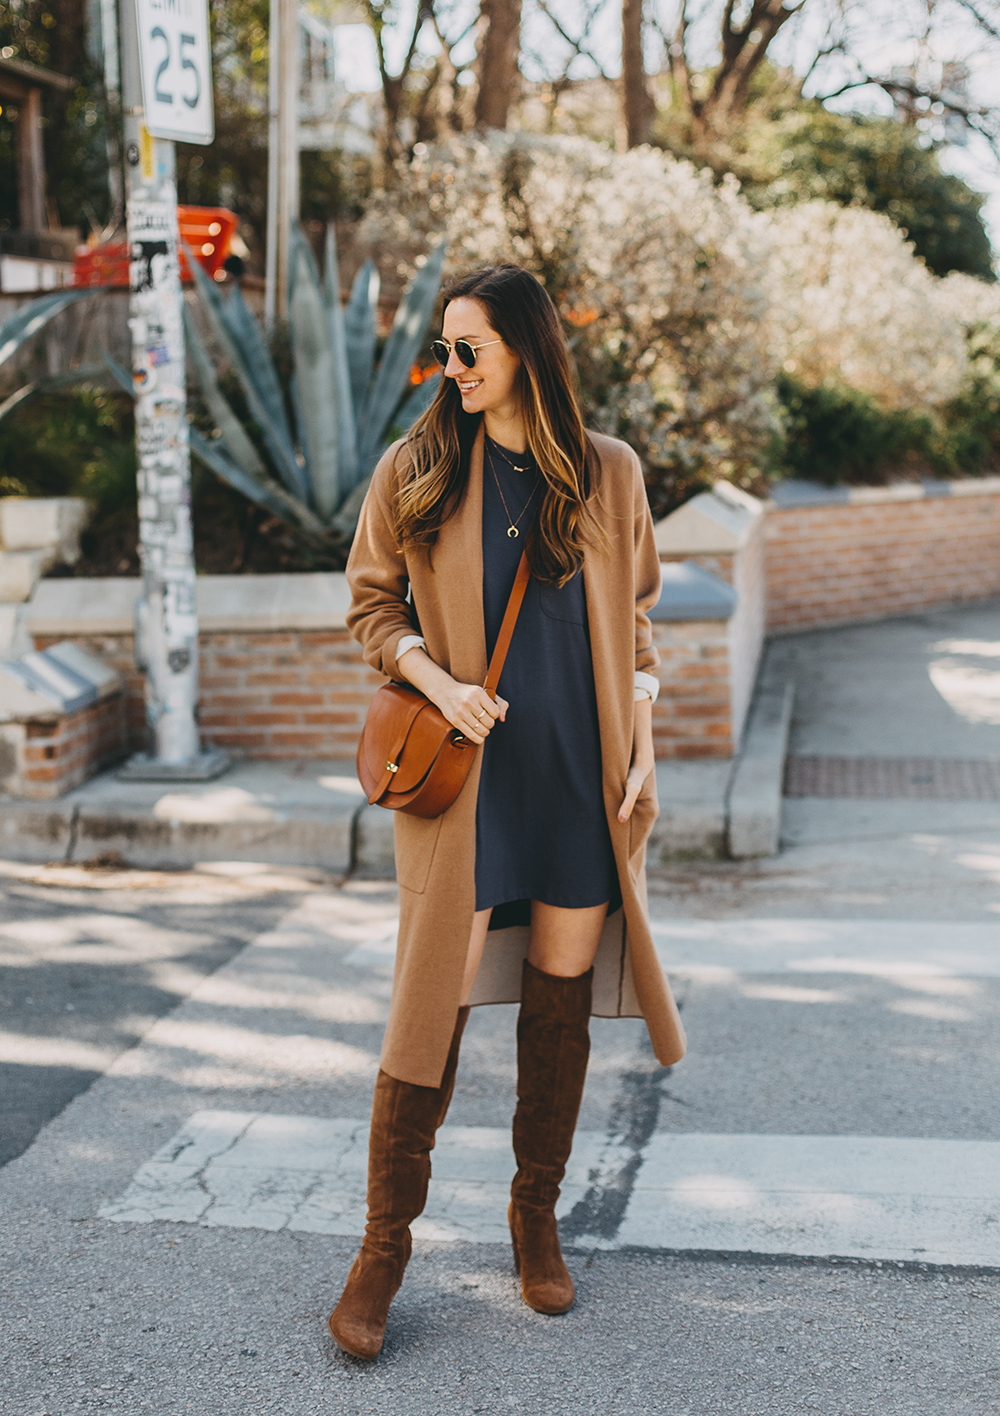 livvyland-blog-olivia-watson-austin-texas-fashion-style-blogger-dress-otk-boots-fall-winter-outfit-idea-inspiration-2